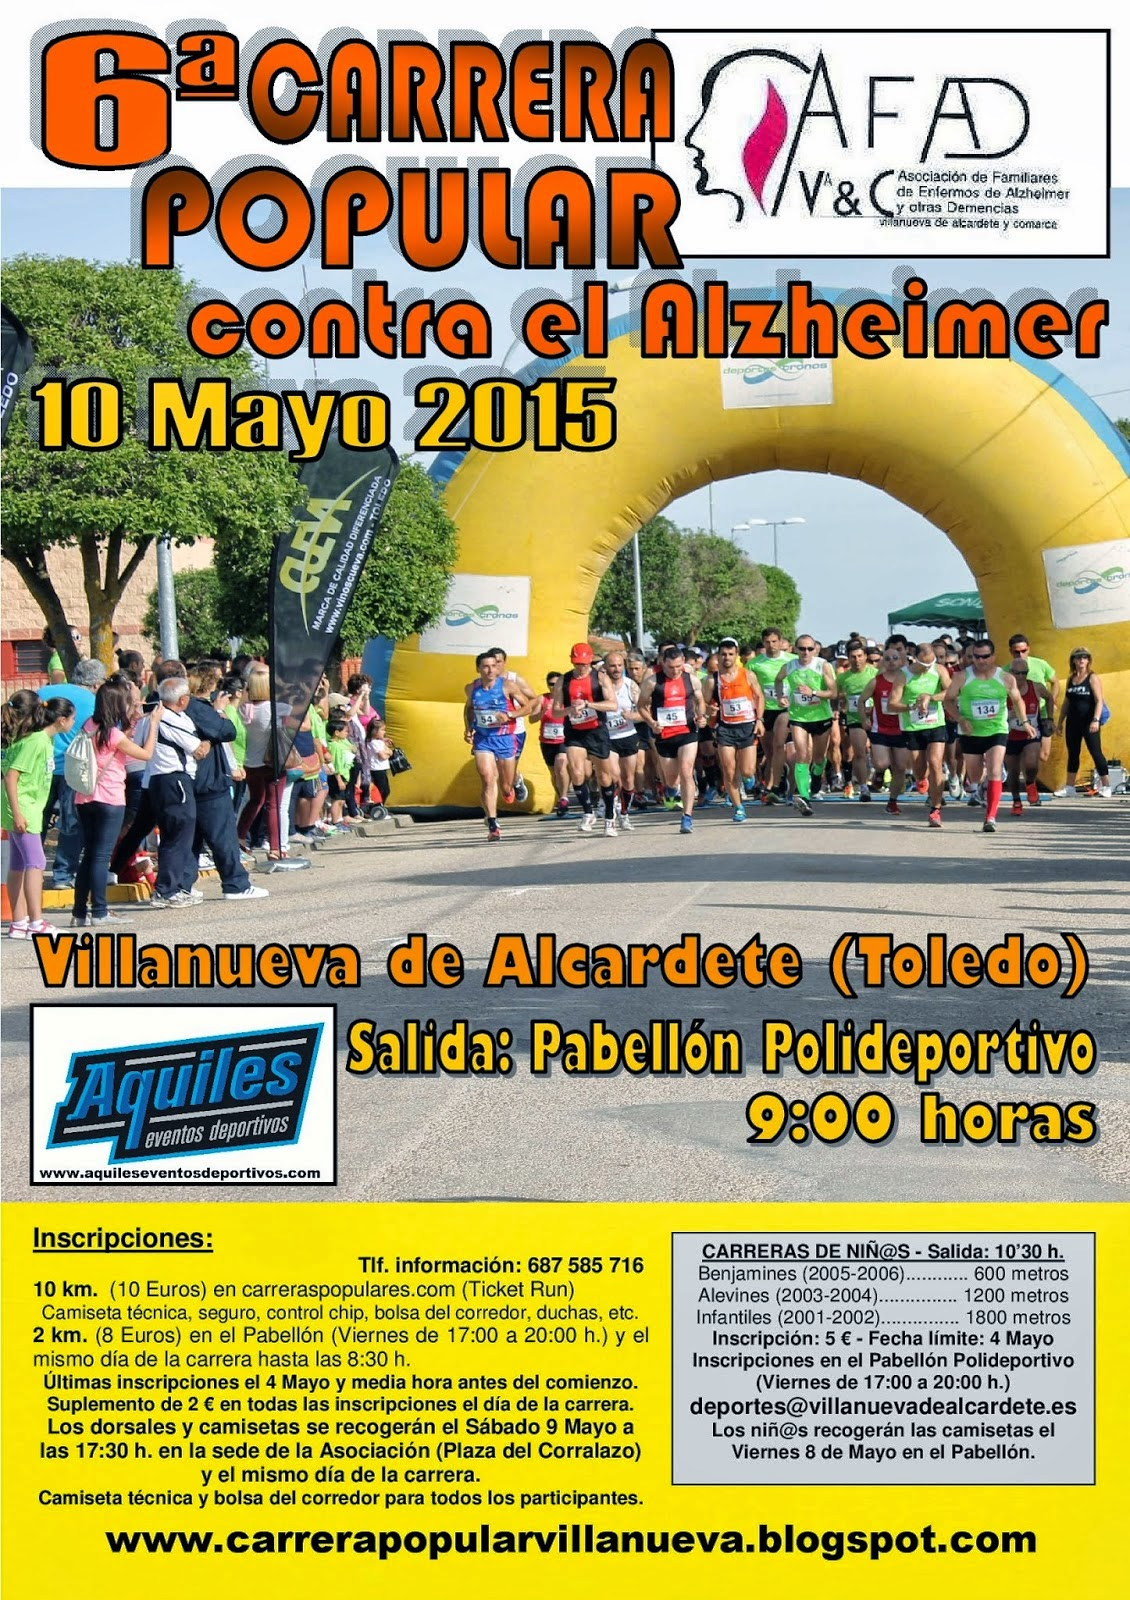 6ª Carrera Popular contra el Alzeheimer de Villanueva de Alcardete